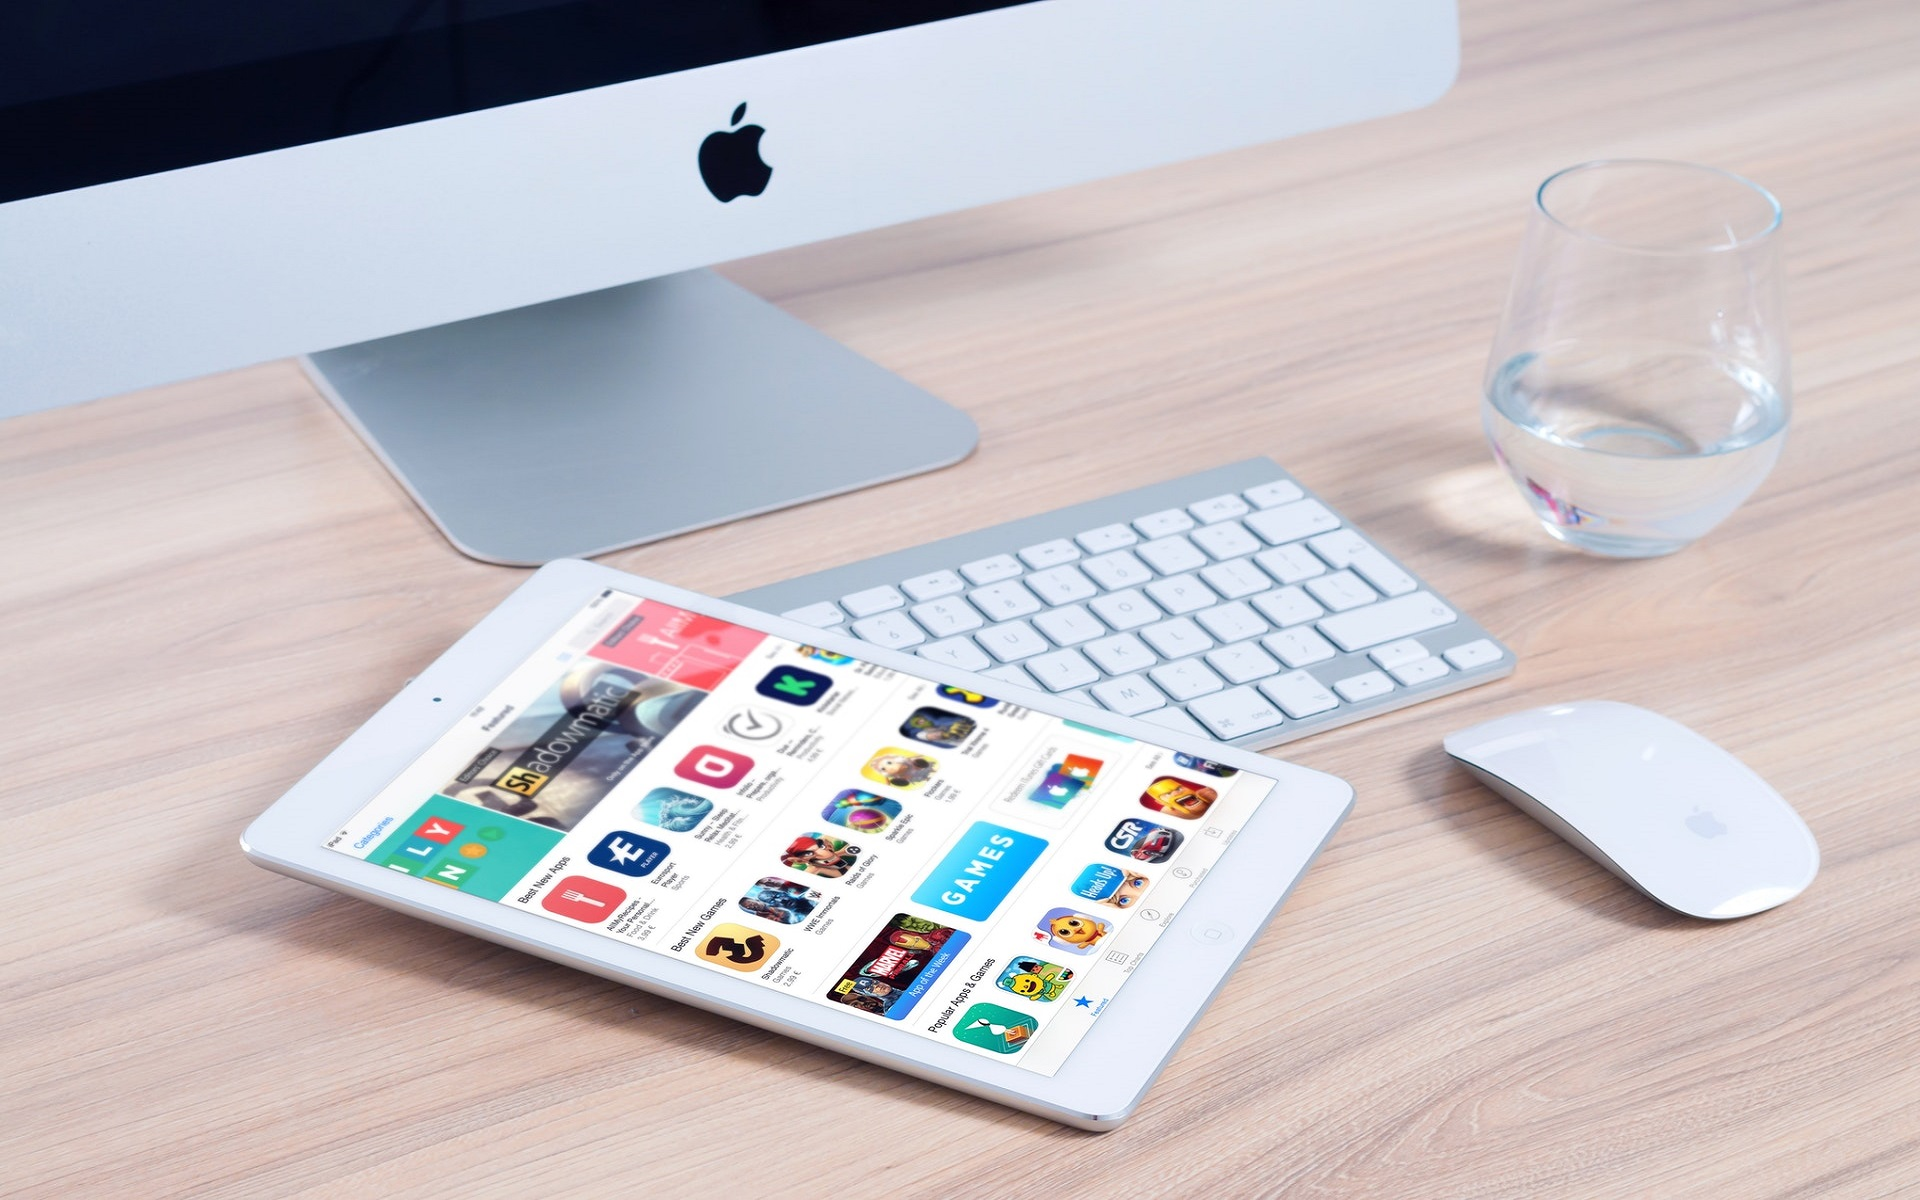 Mobile Application Downloads Continue to Soar Amid the World Lockdown - SYMSWEB